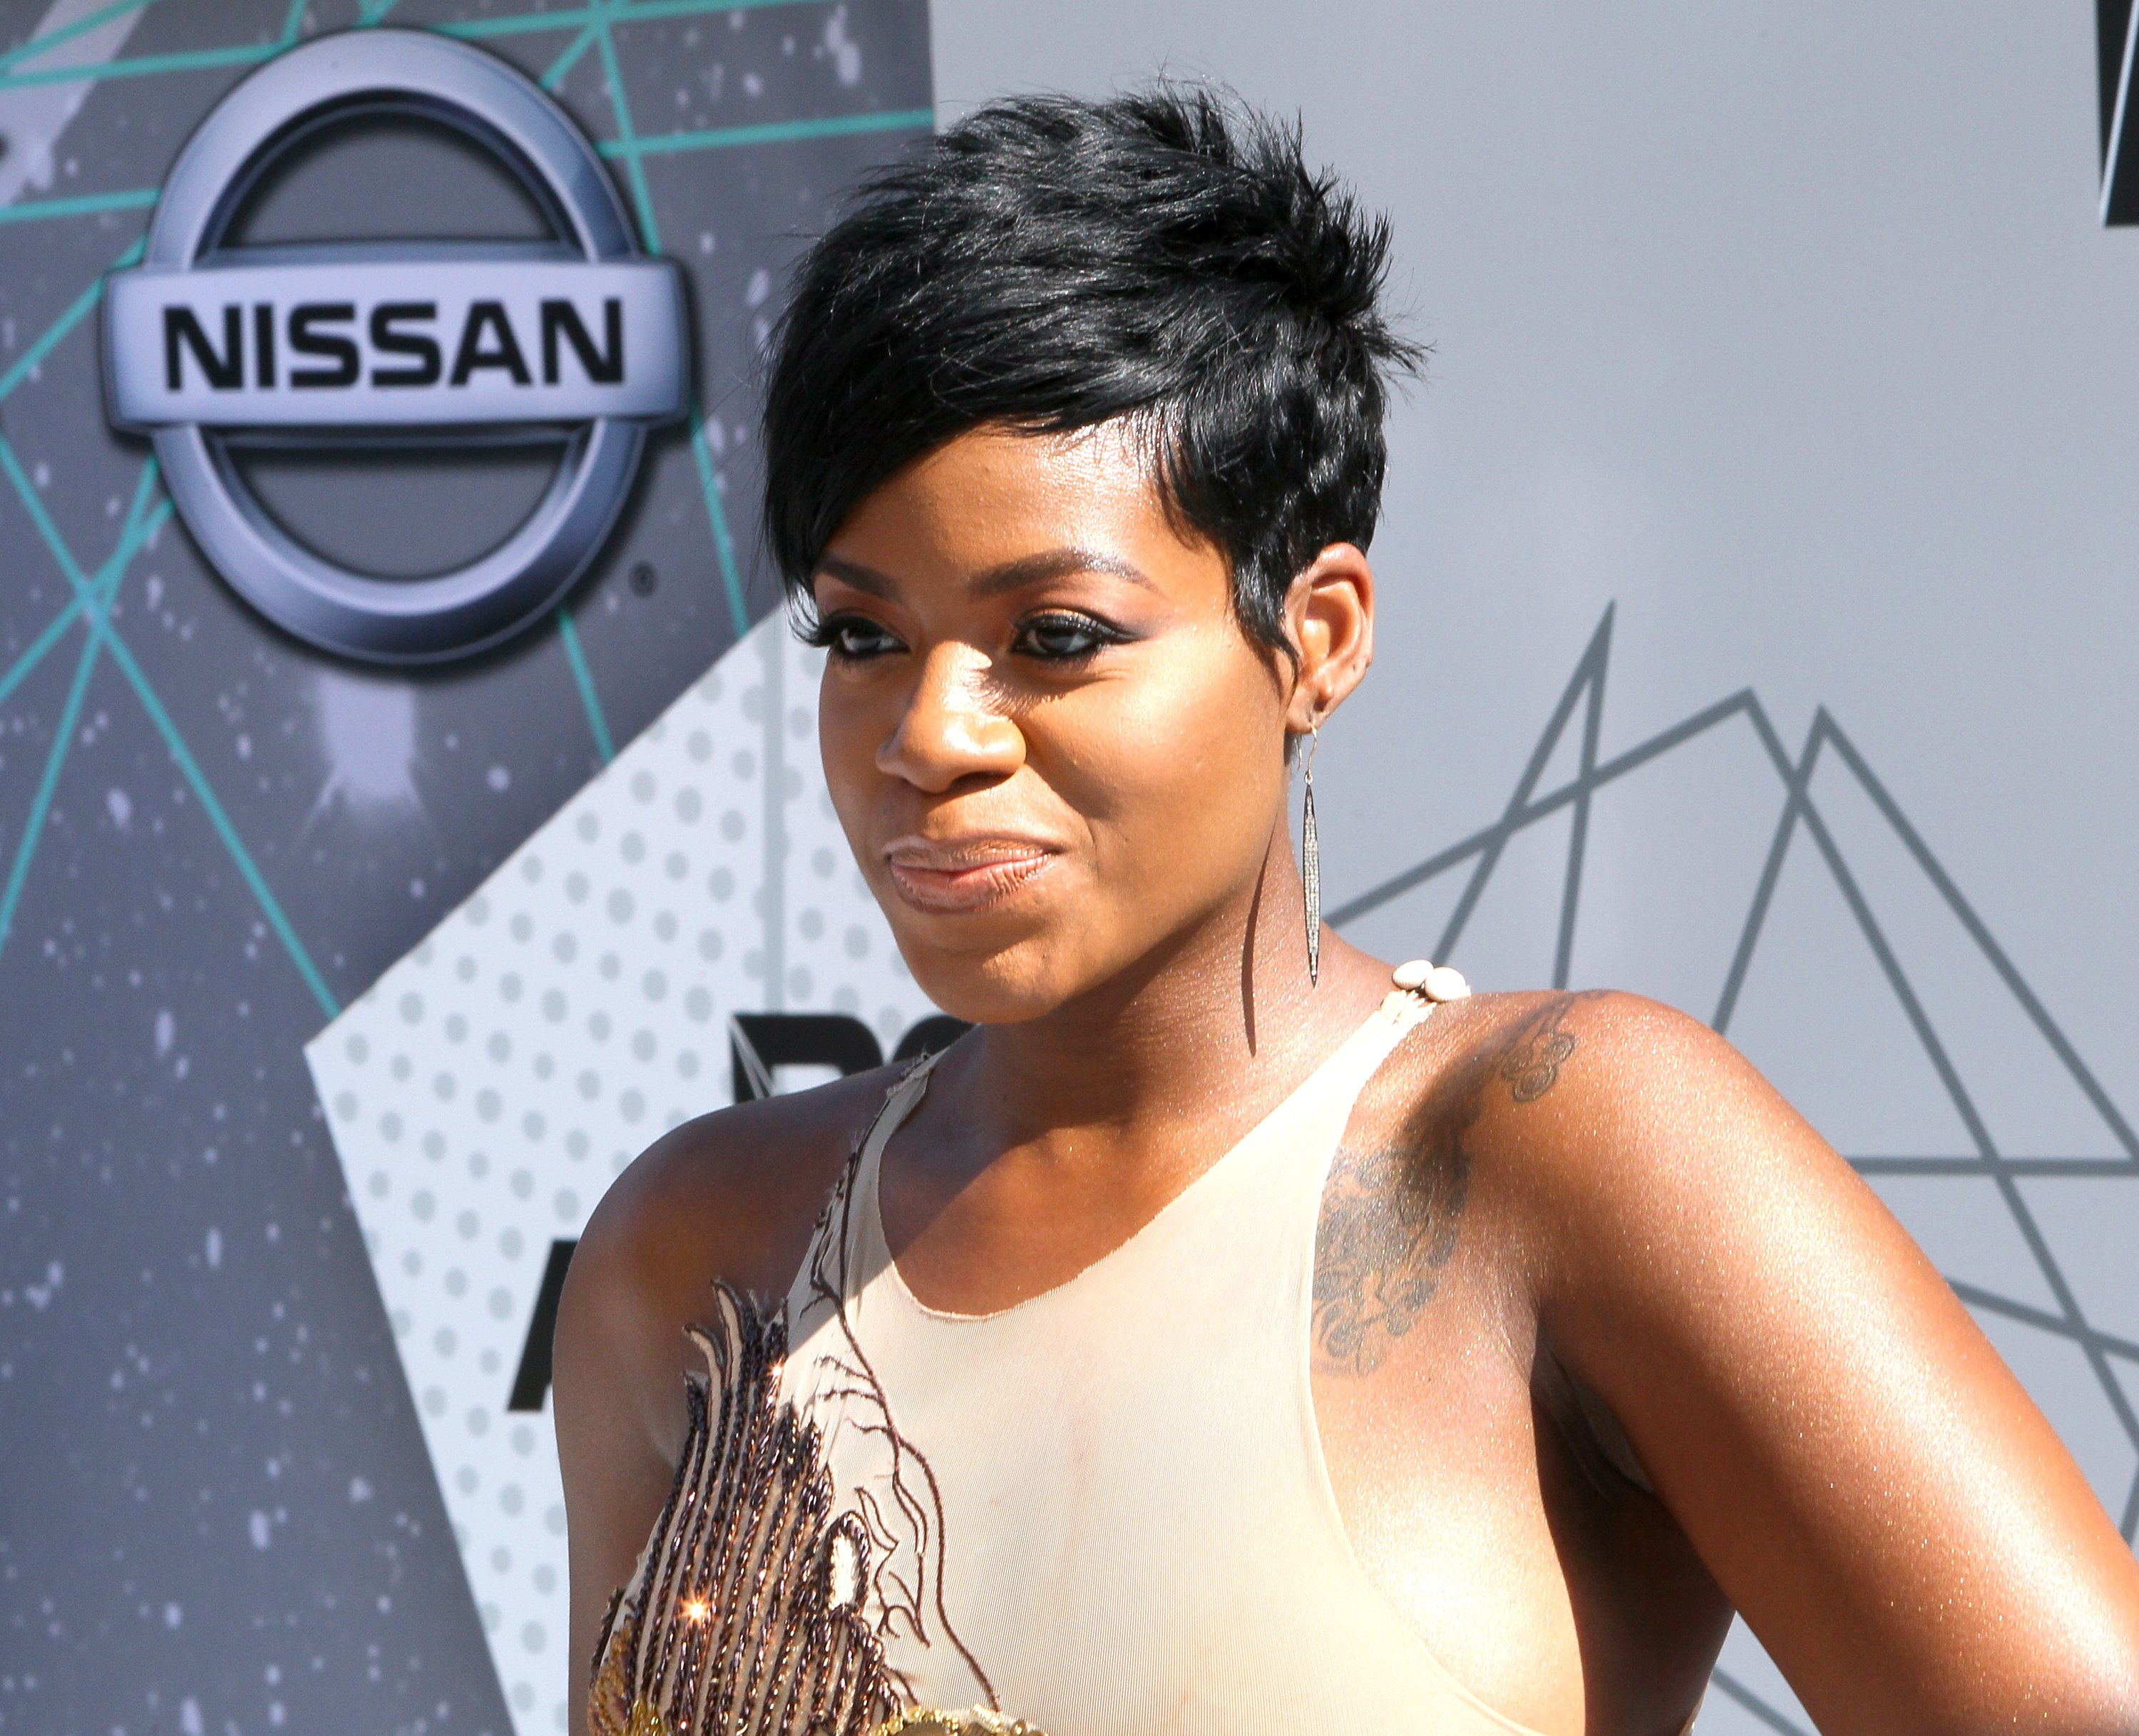 Fantasia Barrino attends the 2016 BET Awards at Microsoft Theater on June 26, 2016 in Los Angeles, California. | Source: Getty Images